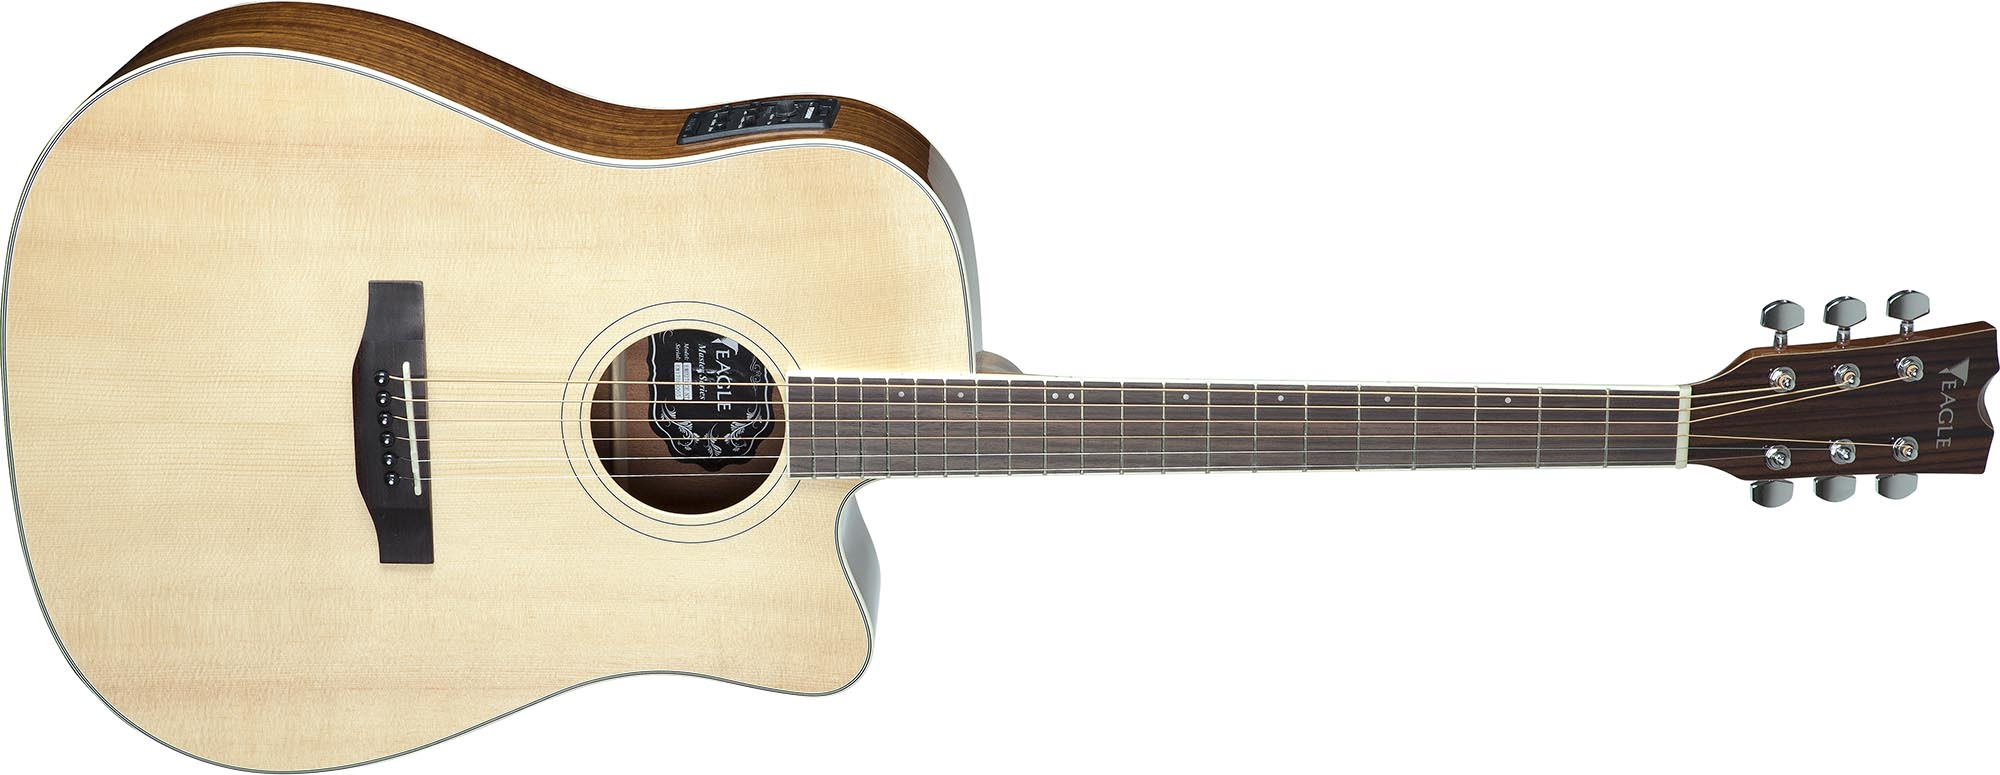 emd270ce violao folk dreadnought tampo solido eagle emd270ce nt natural visao frontal